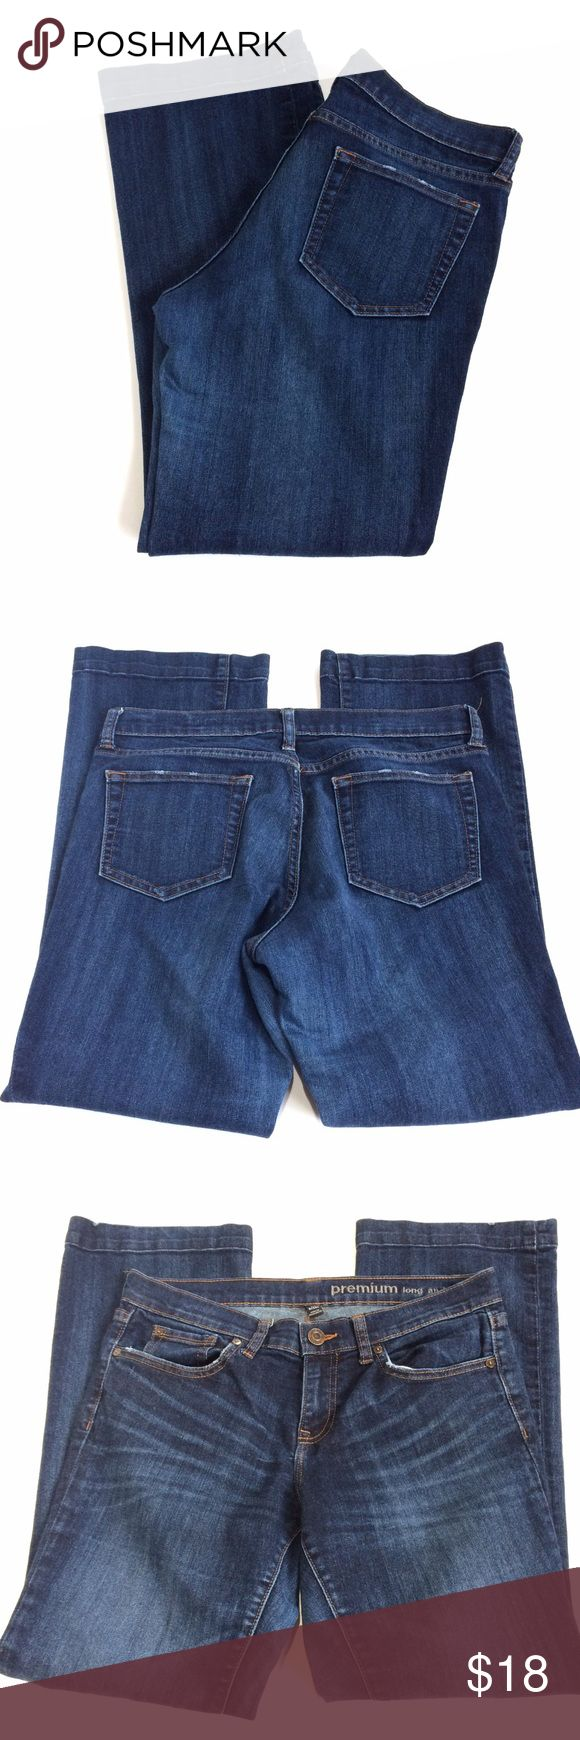 GAP Jeans Long and Lean 8/29A Pre-owned in good condition.  This is a long and lean style jean with a size of 8/29A.  No stains or tears. GAP Jeans